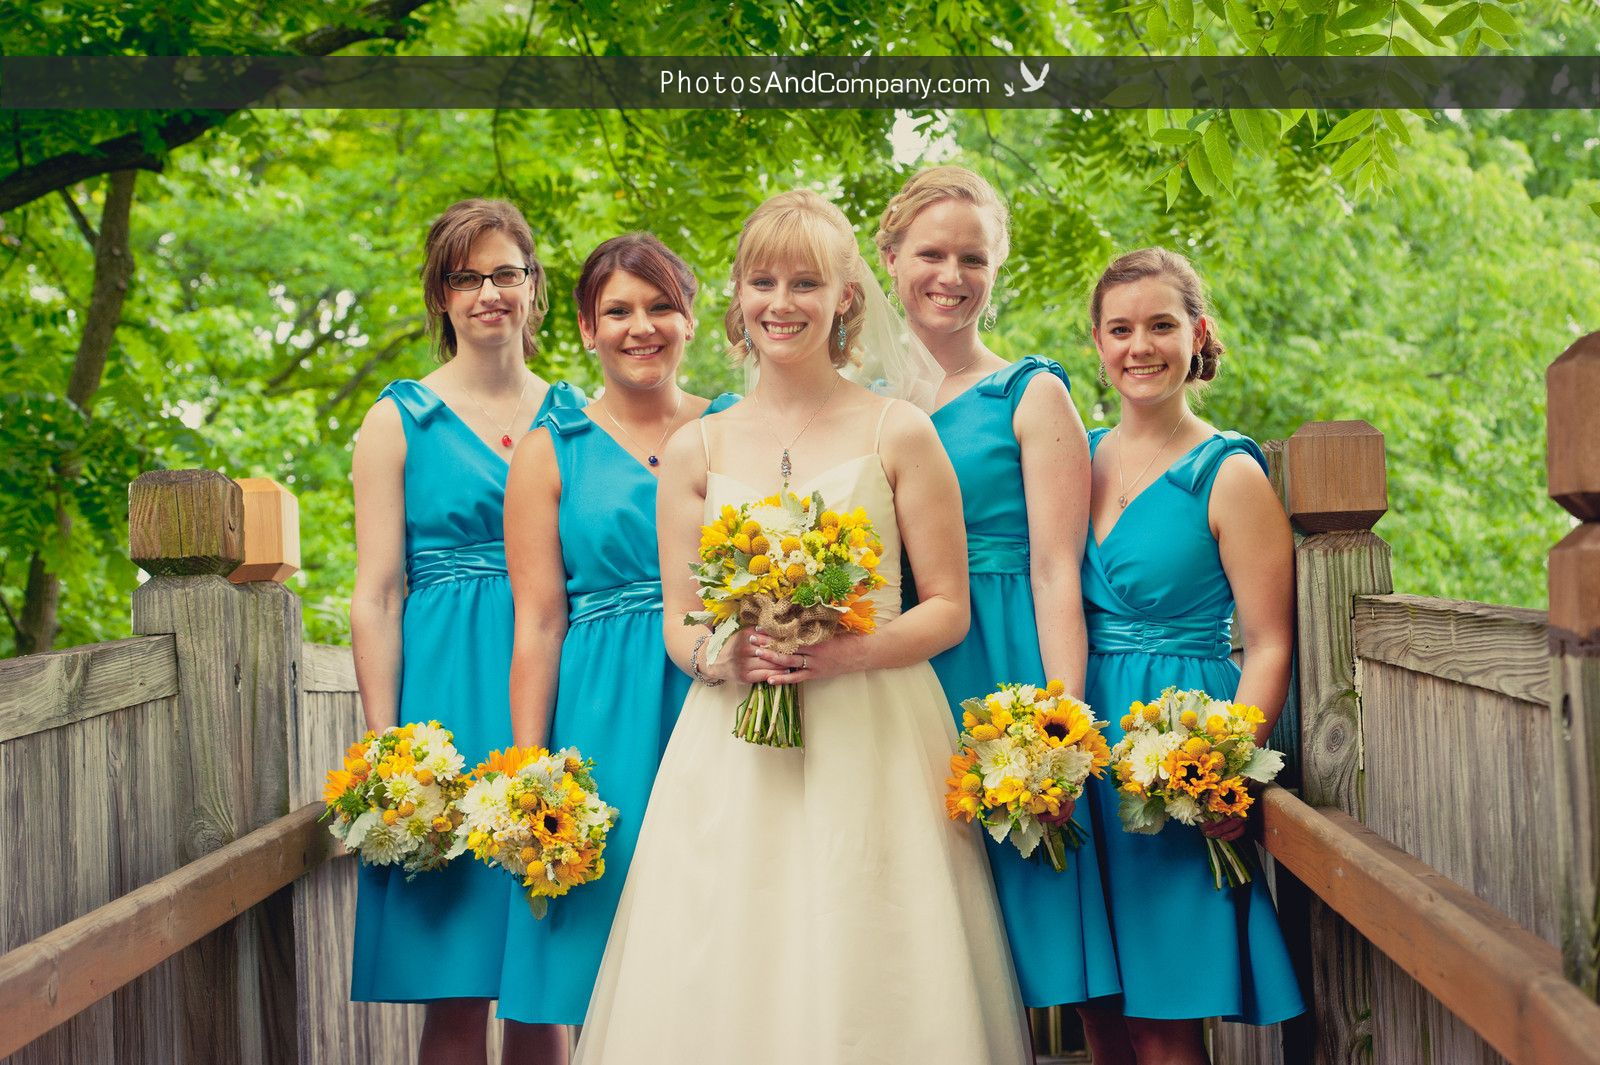 Summer #wedding! Gorgeous yellow & orange #bouquets !